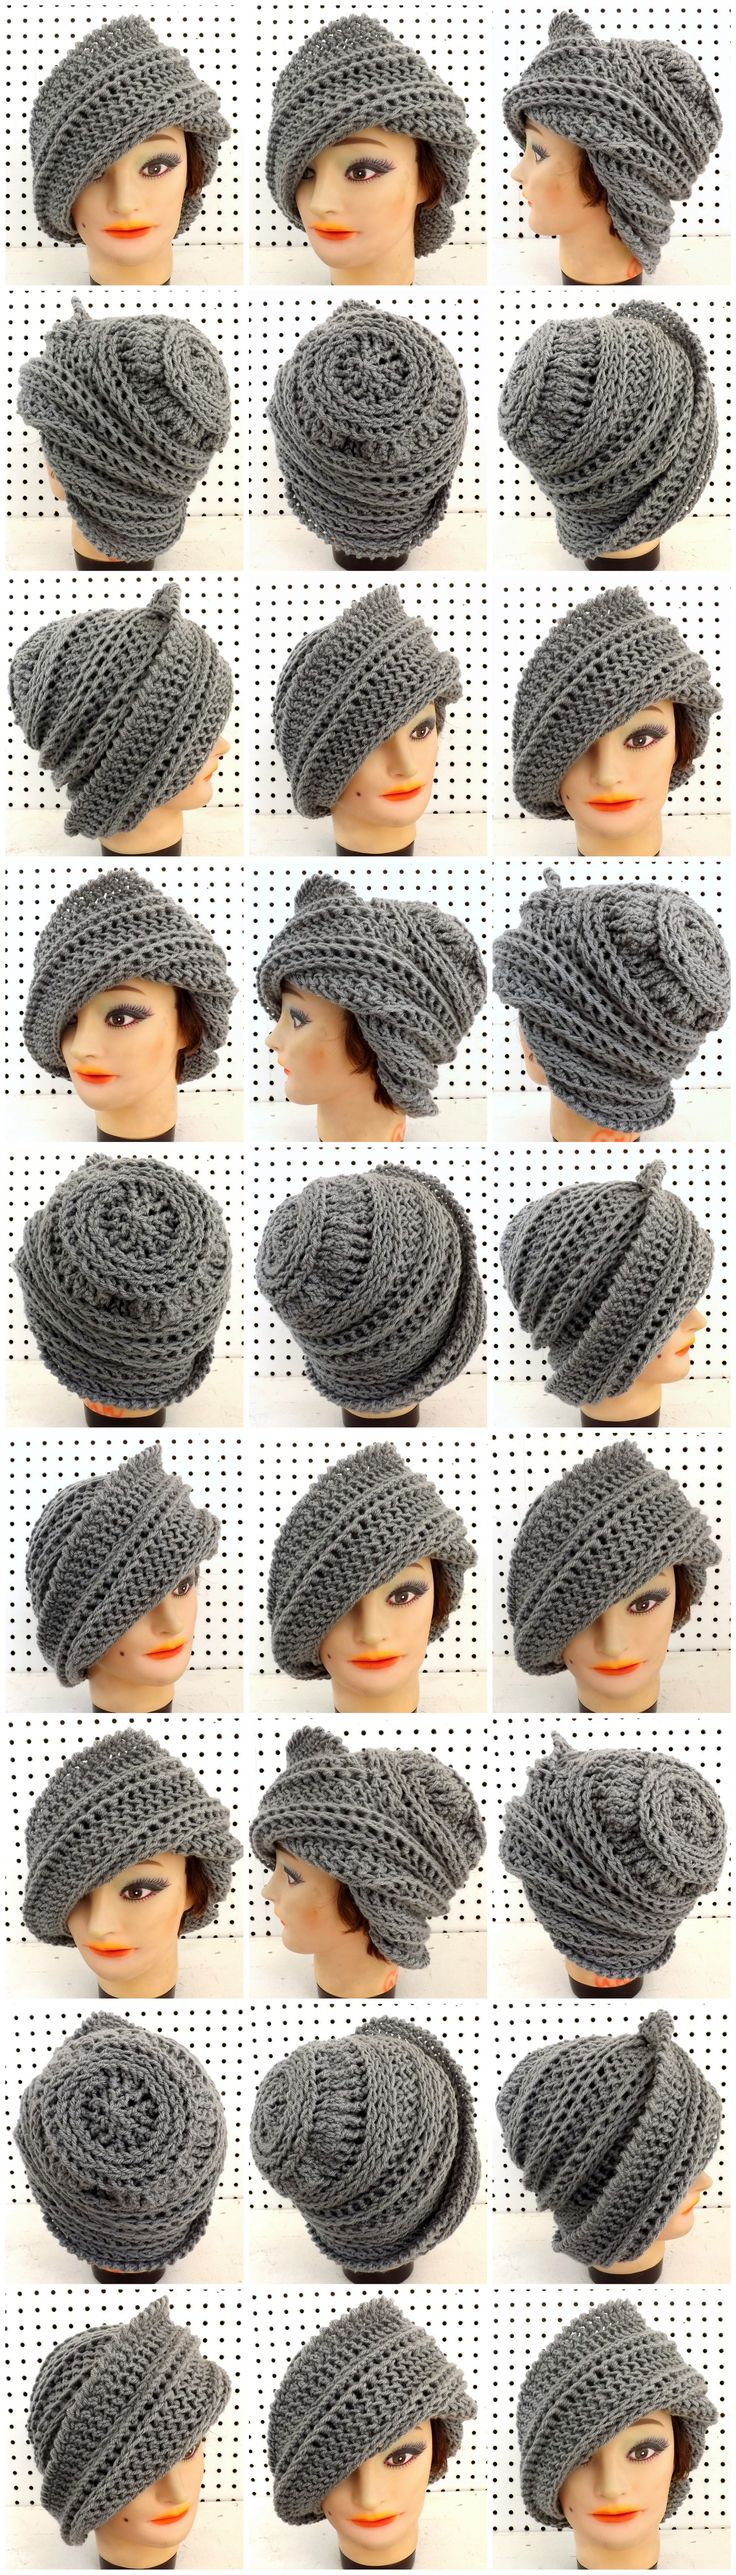 https://www.etsy.com/listing/169436506/crochet-hat-womens-hat-judy-womens JUDY Crochet Wide Brim Beanie Hat in Dark Gray